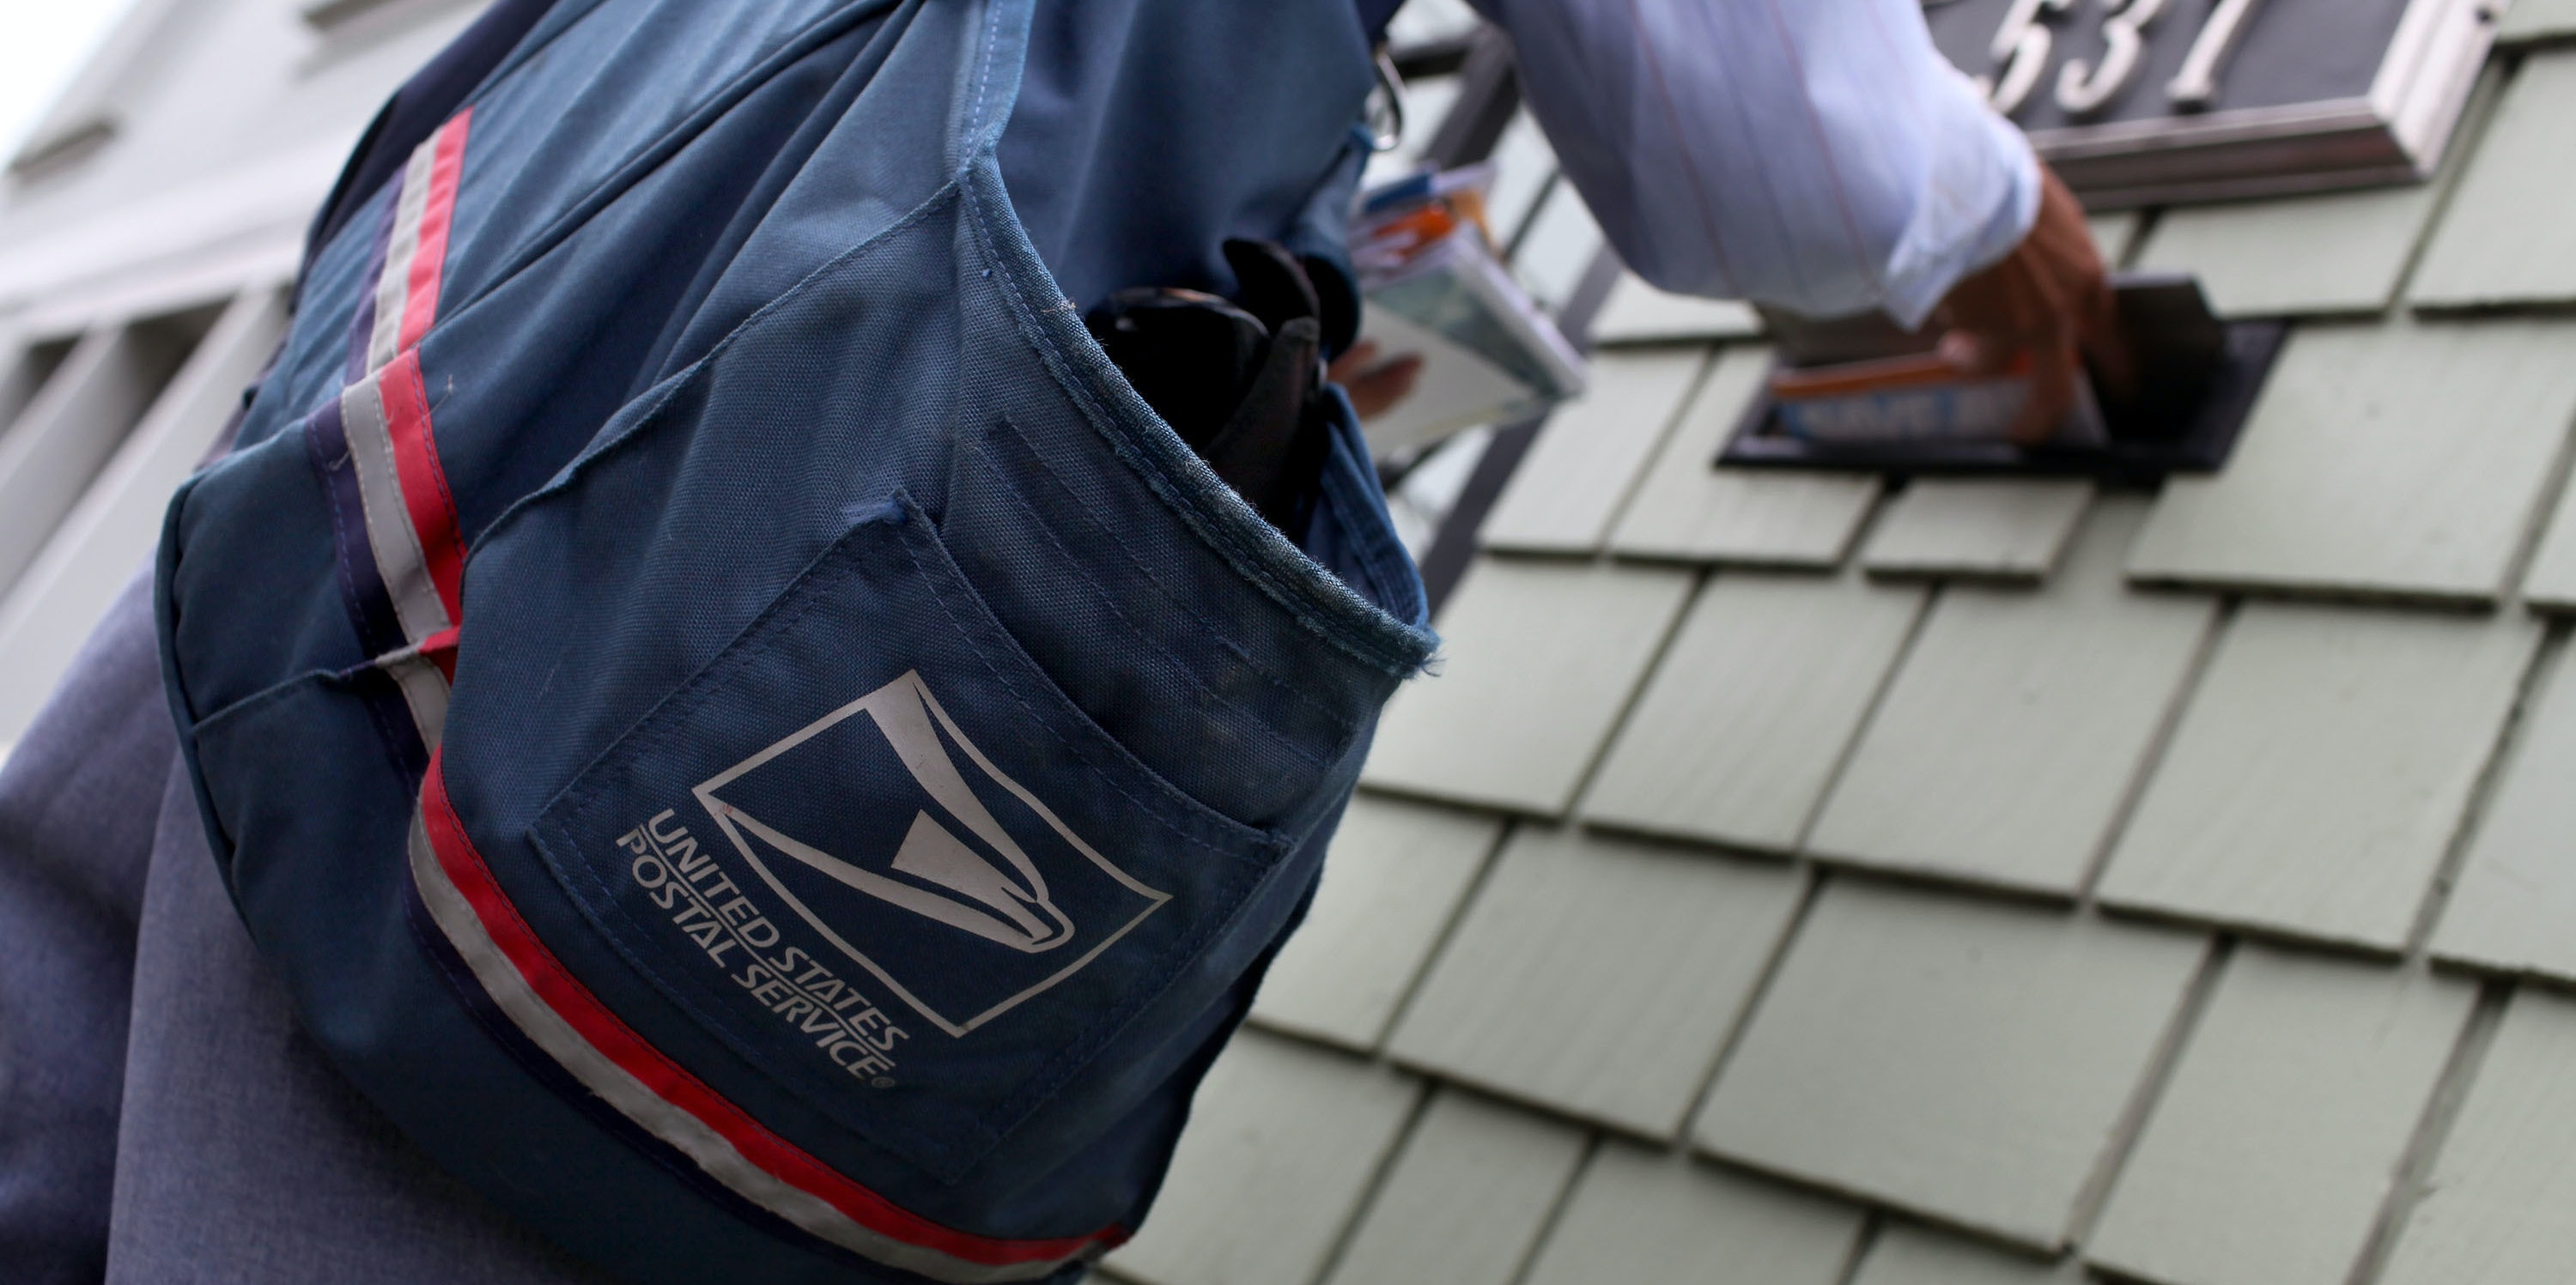 US Postal Service letter carrier Anthony Ow places letters in a mailbox as he walks his delivery route July 30, 2009 in San Francisco, California.